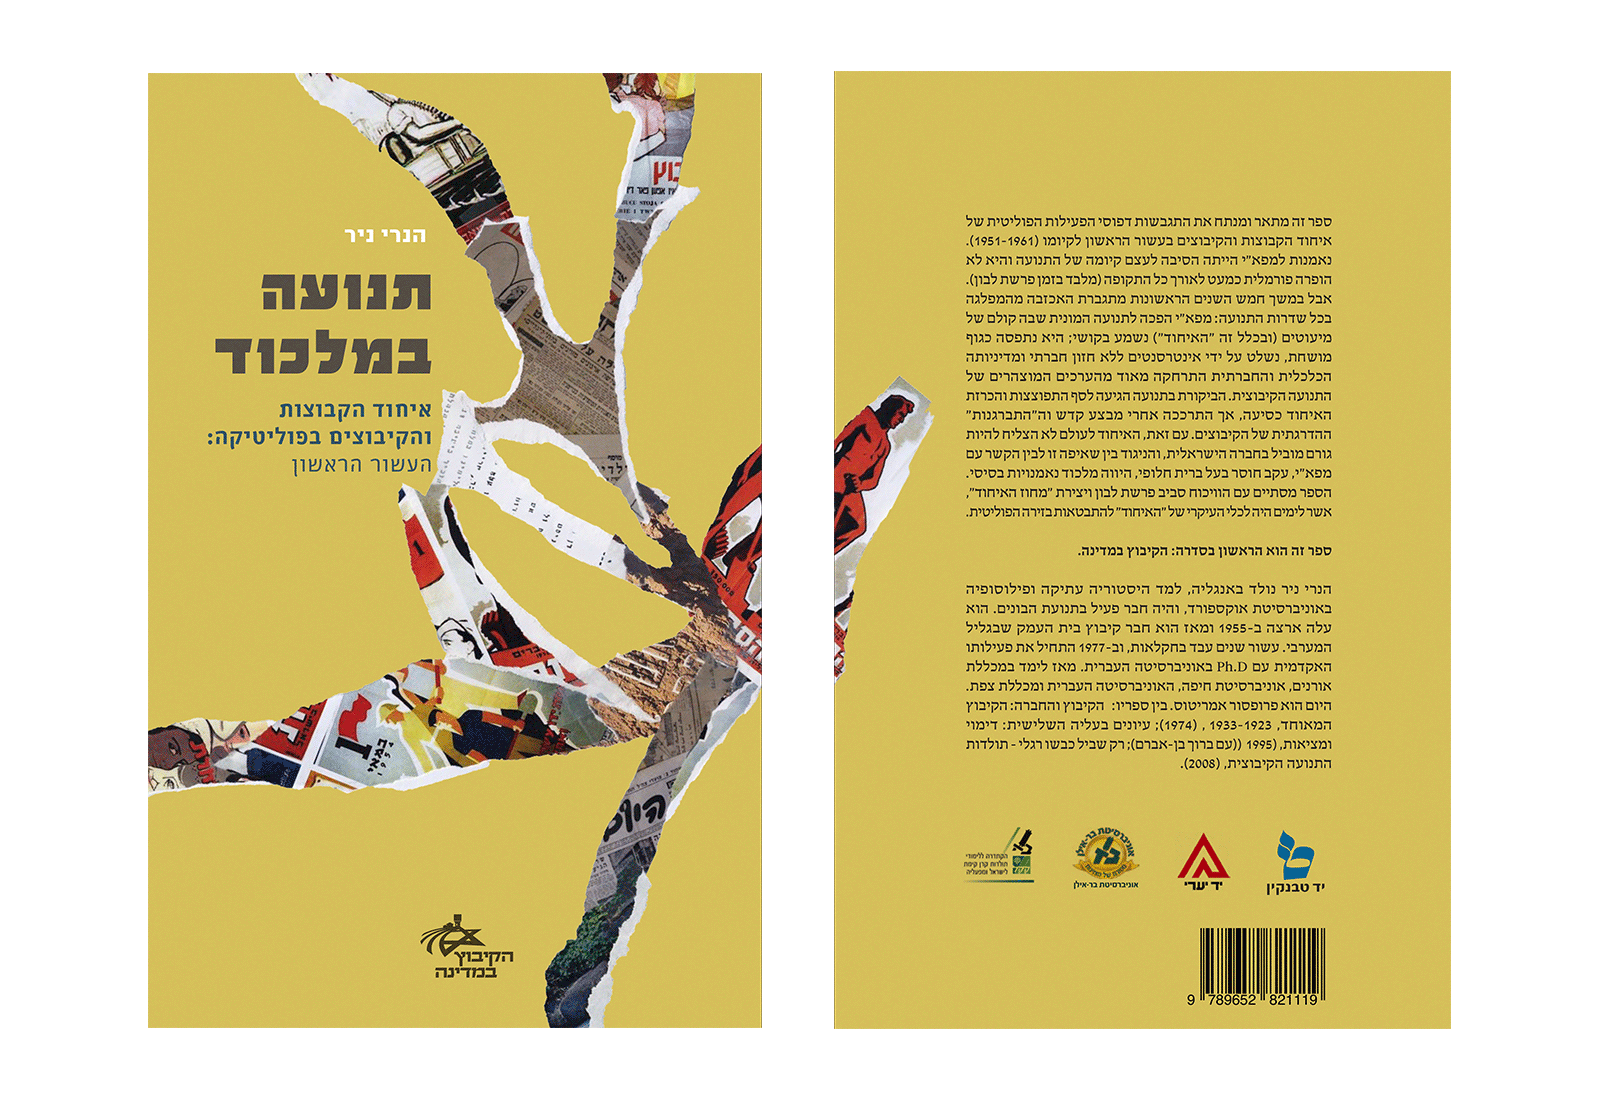 https://bigeyes.co.il/wp-content/uploads/2019/08/kibbutz-books-3.png